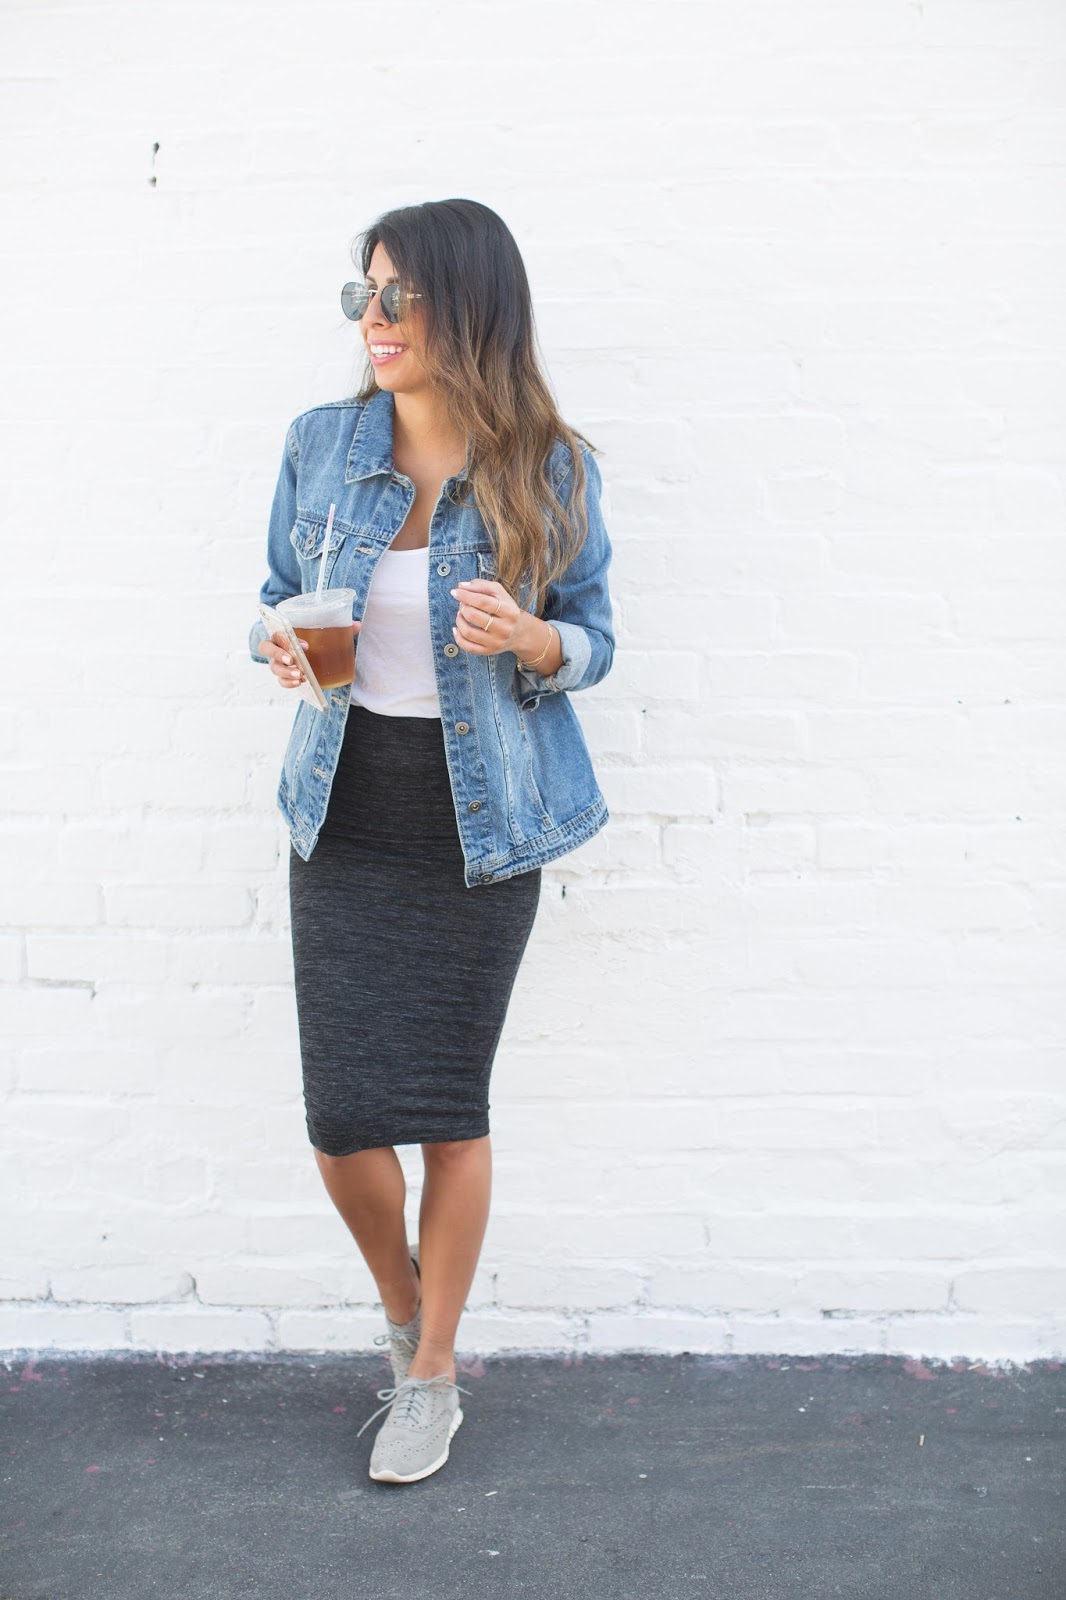 how to wear denim jacket, how to wear tennis shoes with skirts, casual weekend outfit ideas